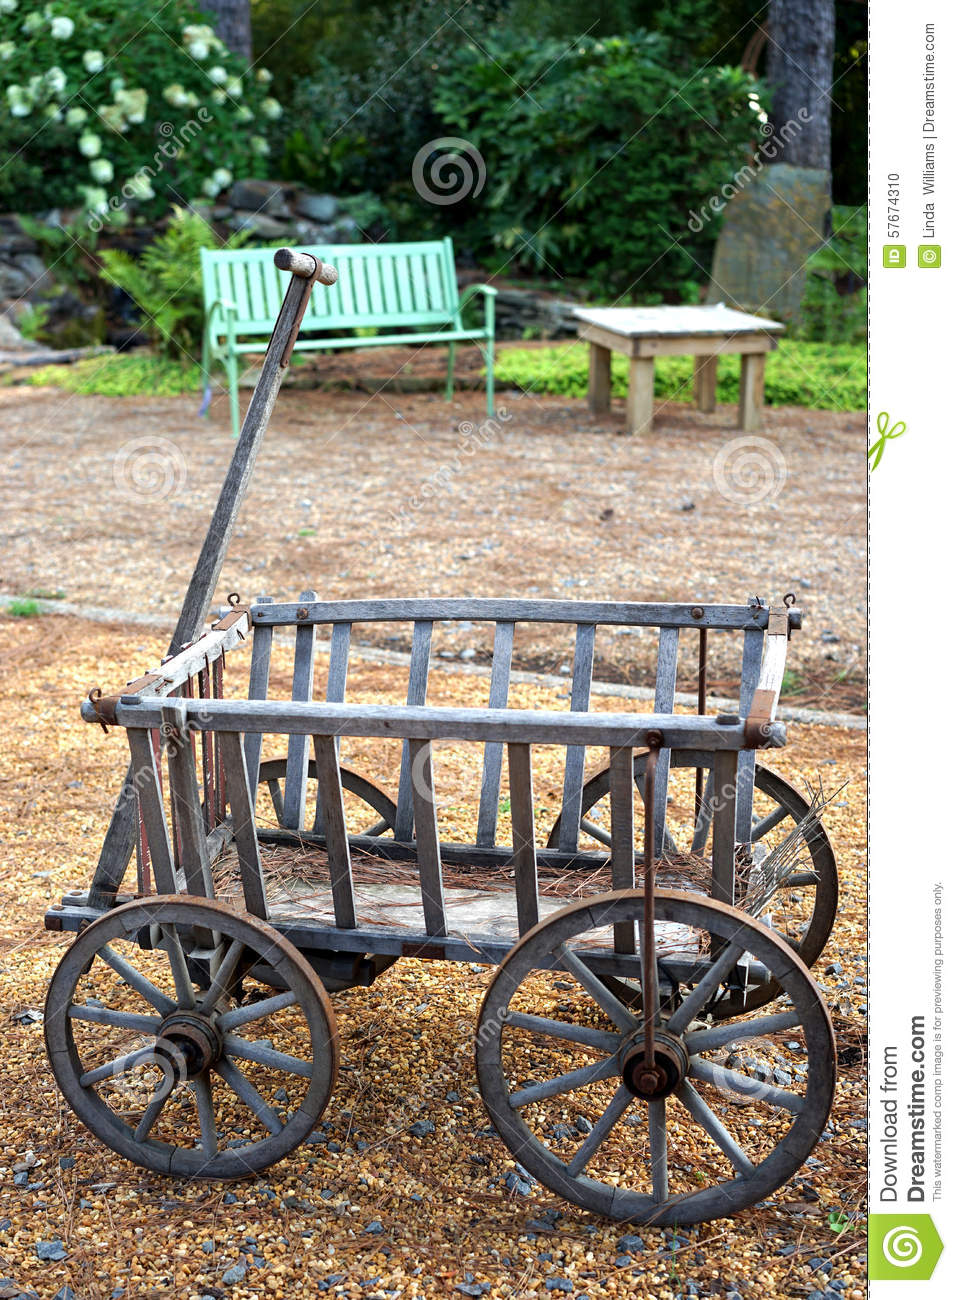 Antique Small Wooden Wagon Stock Photo Image 57674310